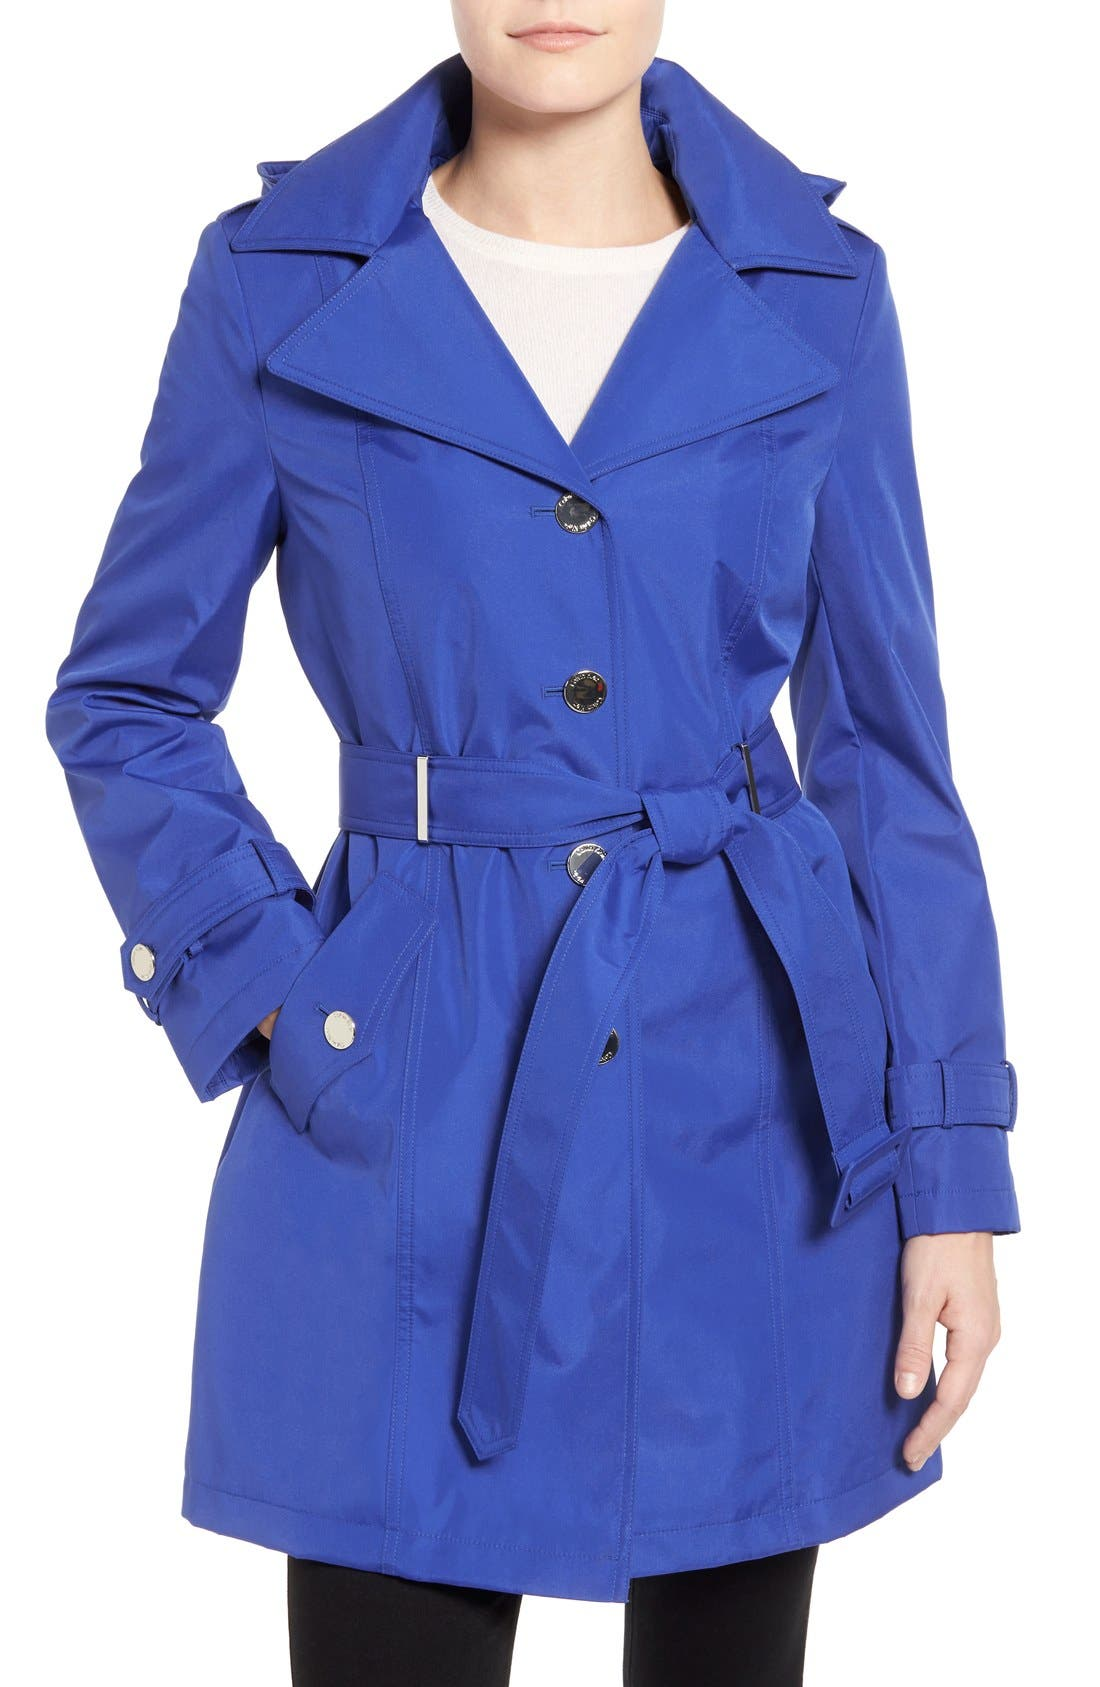 Alternate Image 1 Selected - Calvin Klein Single Breasted Belted Trench Coat (Regular & Petite)